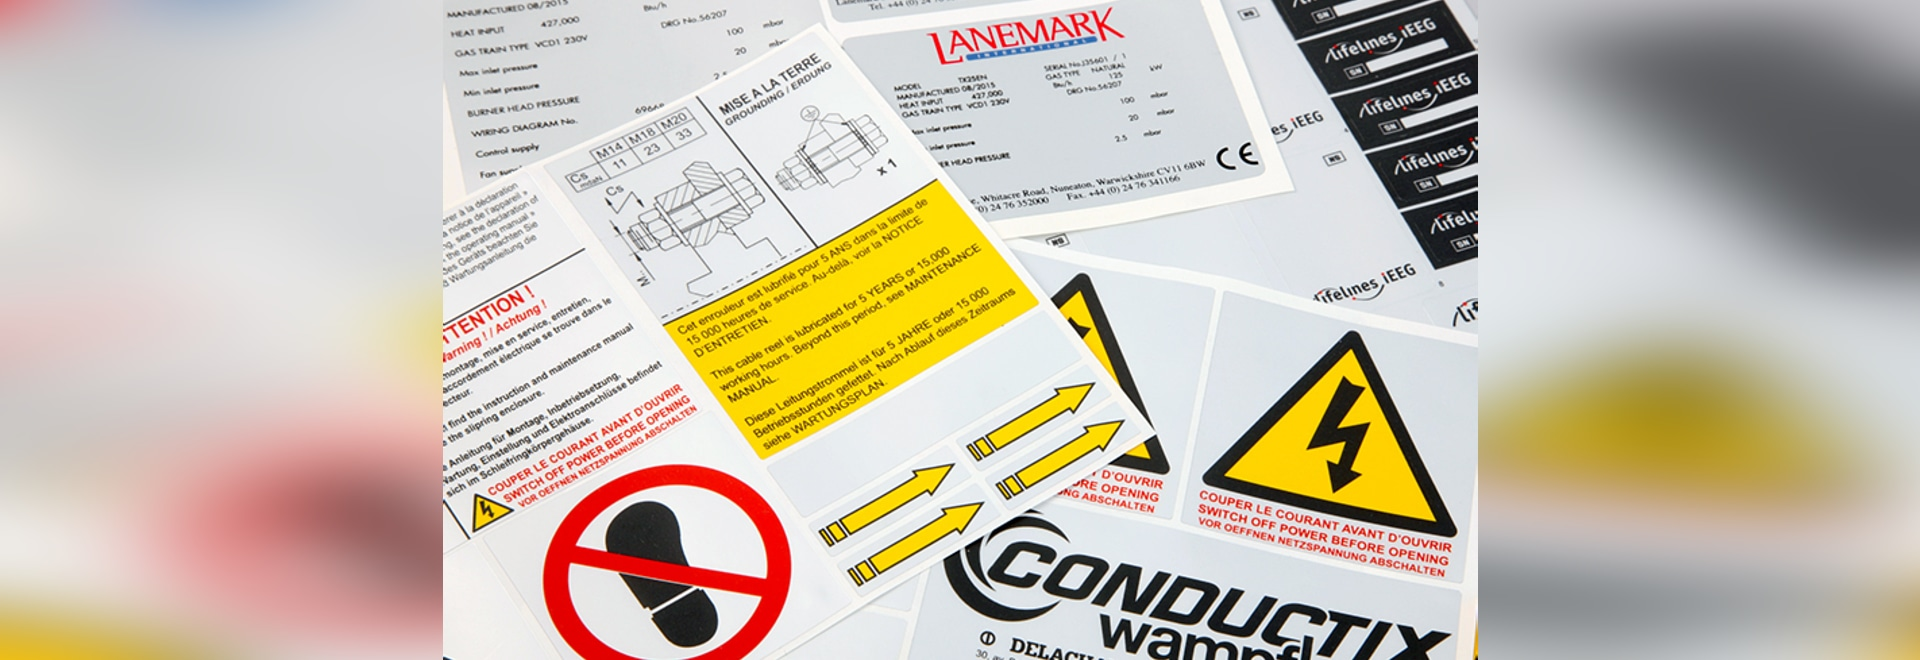 PRINTABLE LABEL SETS: CUT COSTS, SAVE TIME, REDUCE WASTE.